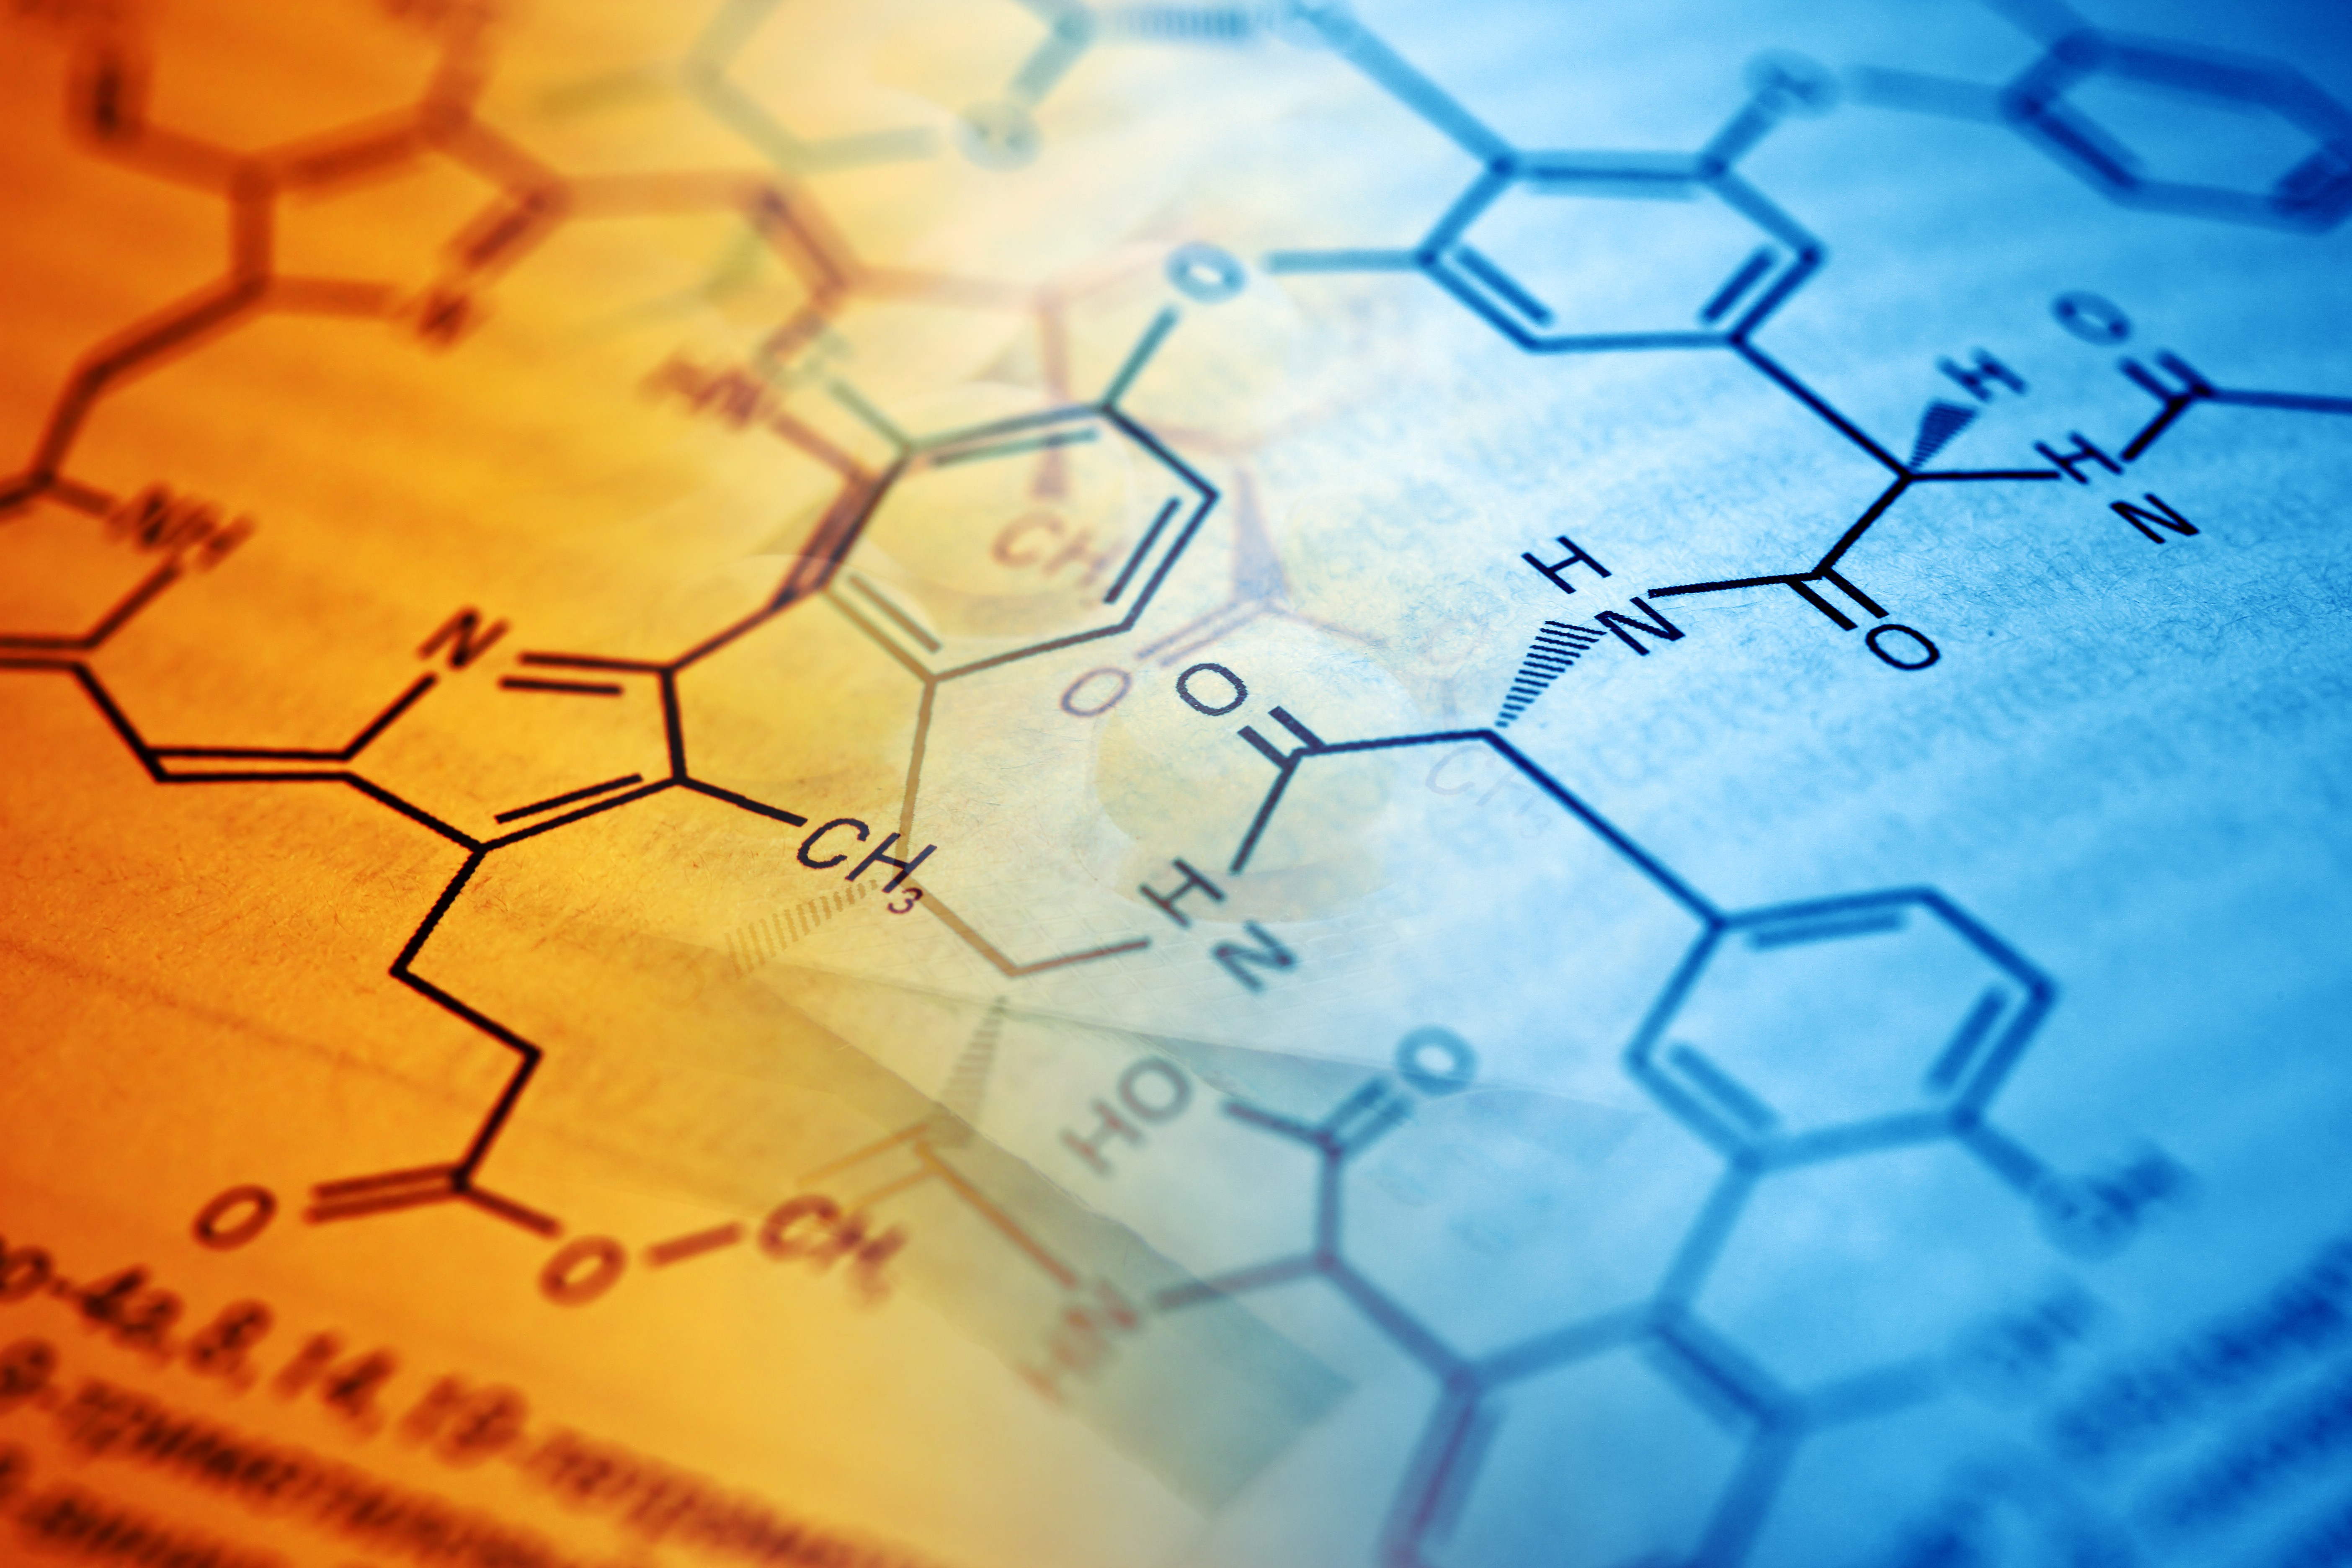 Chemistry and Chemical Biology Special Initiatives Fund